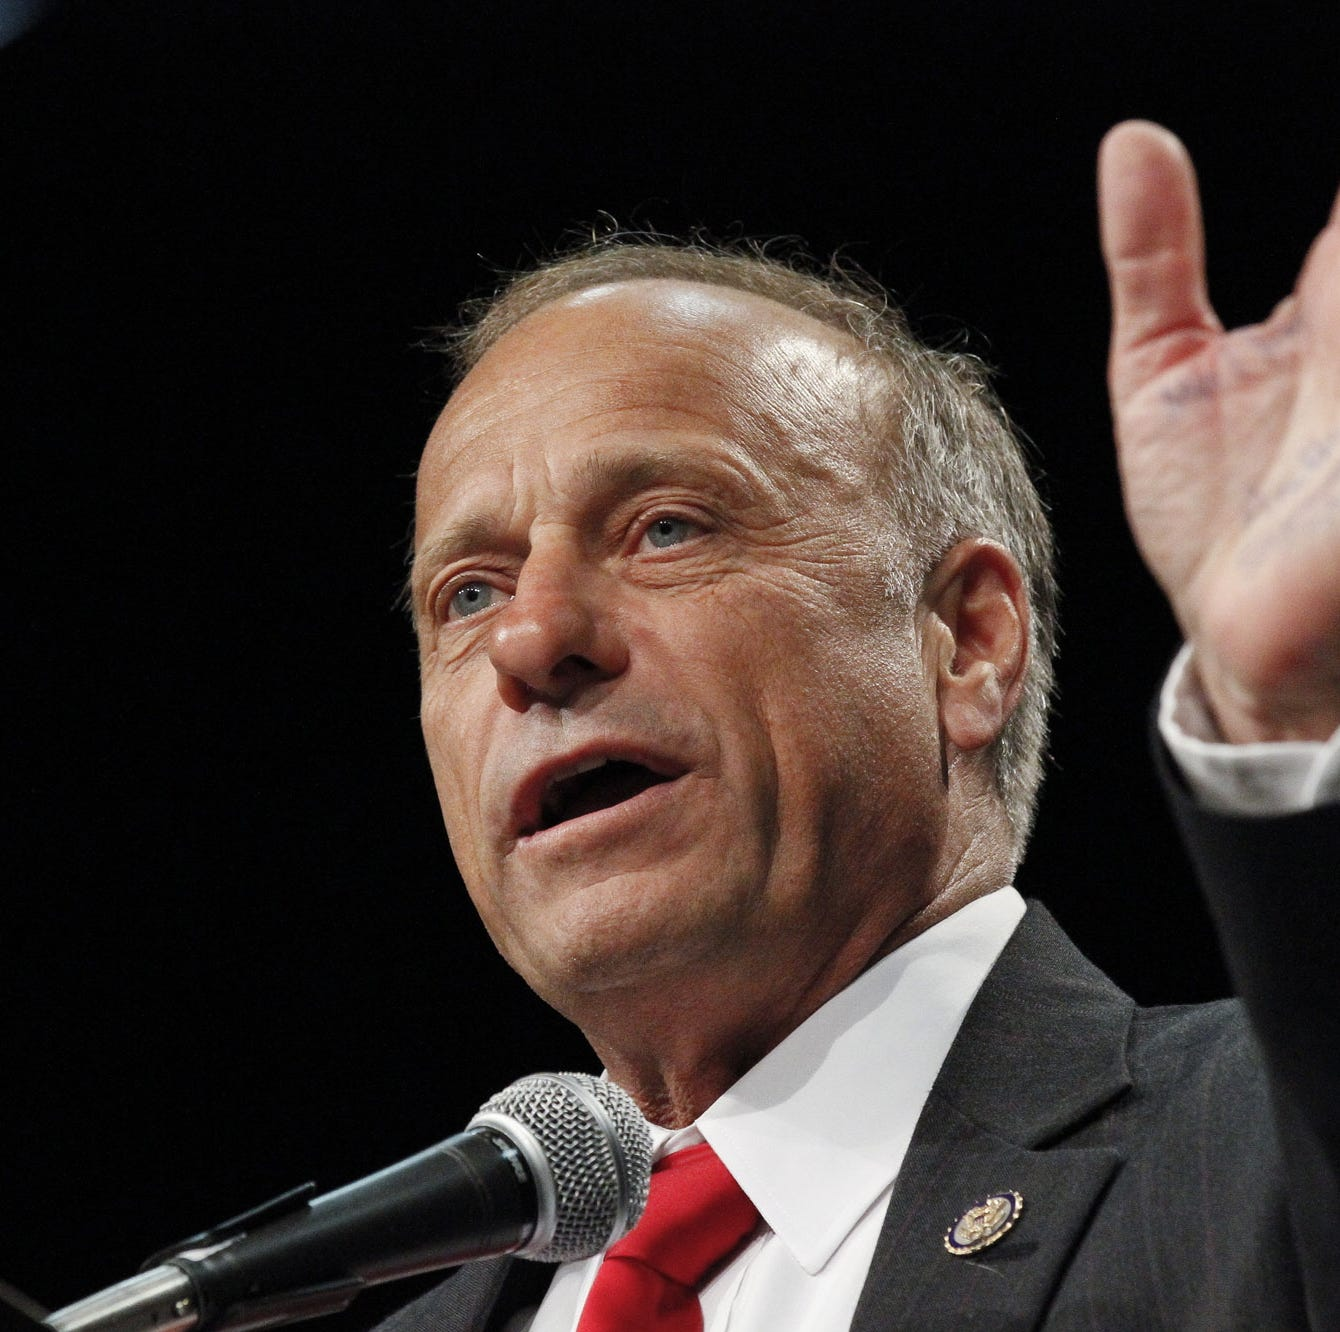 Rep. Steve King says he regrets white supremacy comments, joins lawmakers in condemning remarks